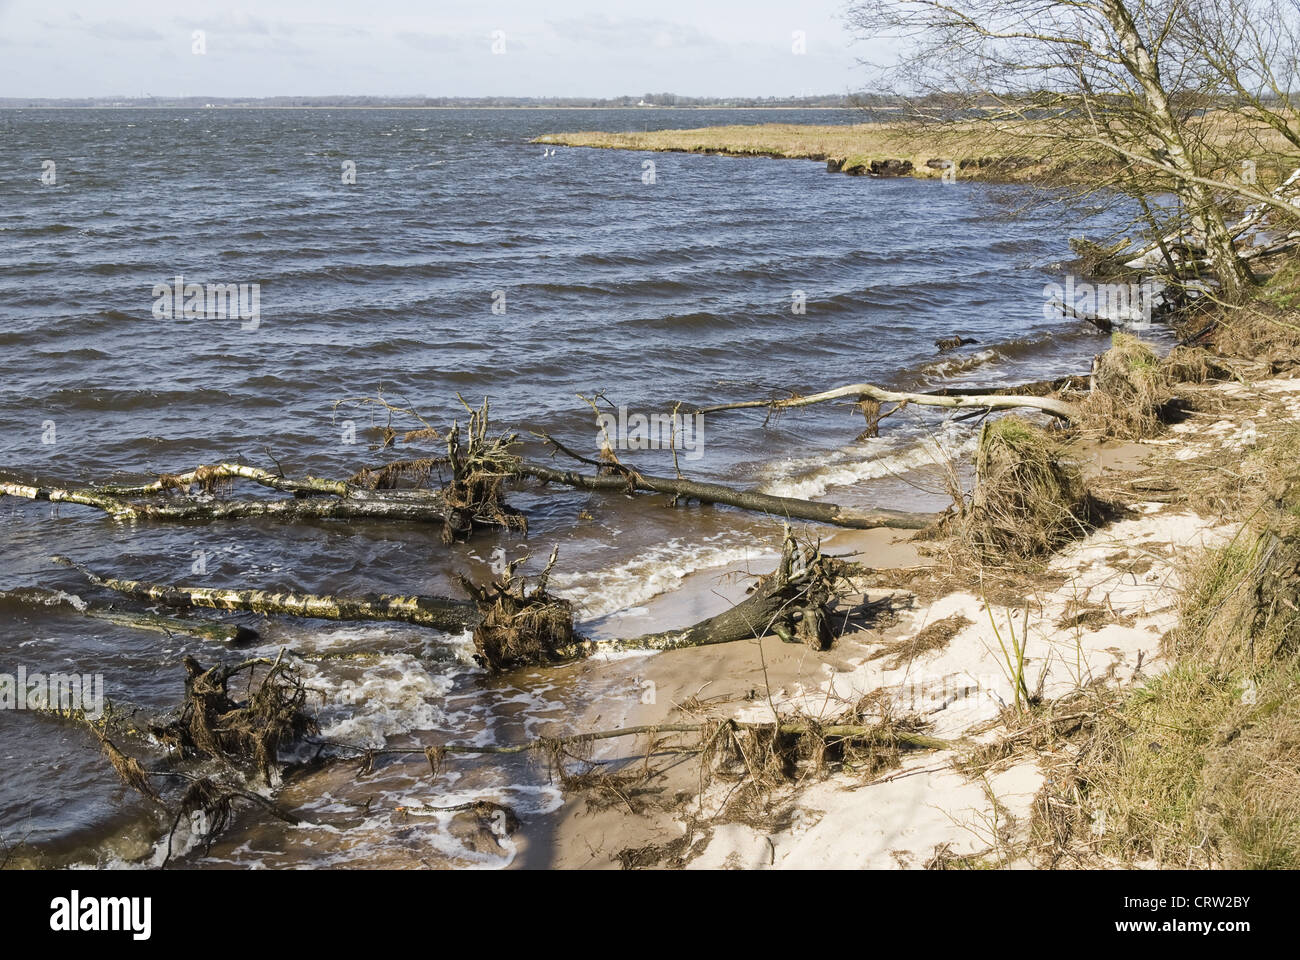 Uprooted tree on the beach - Stock Image